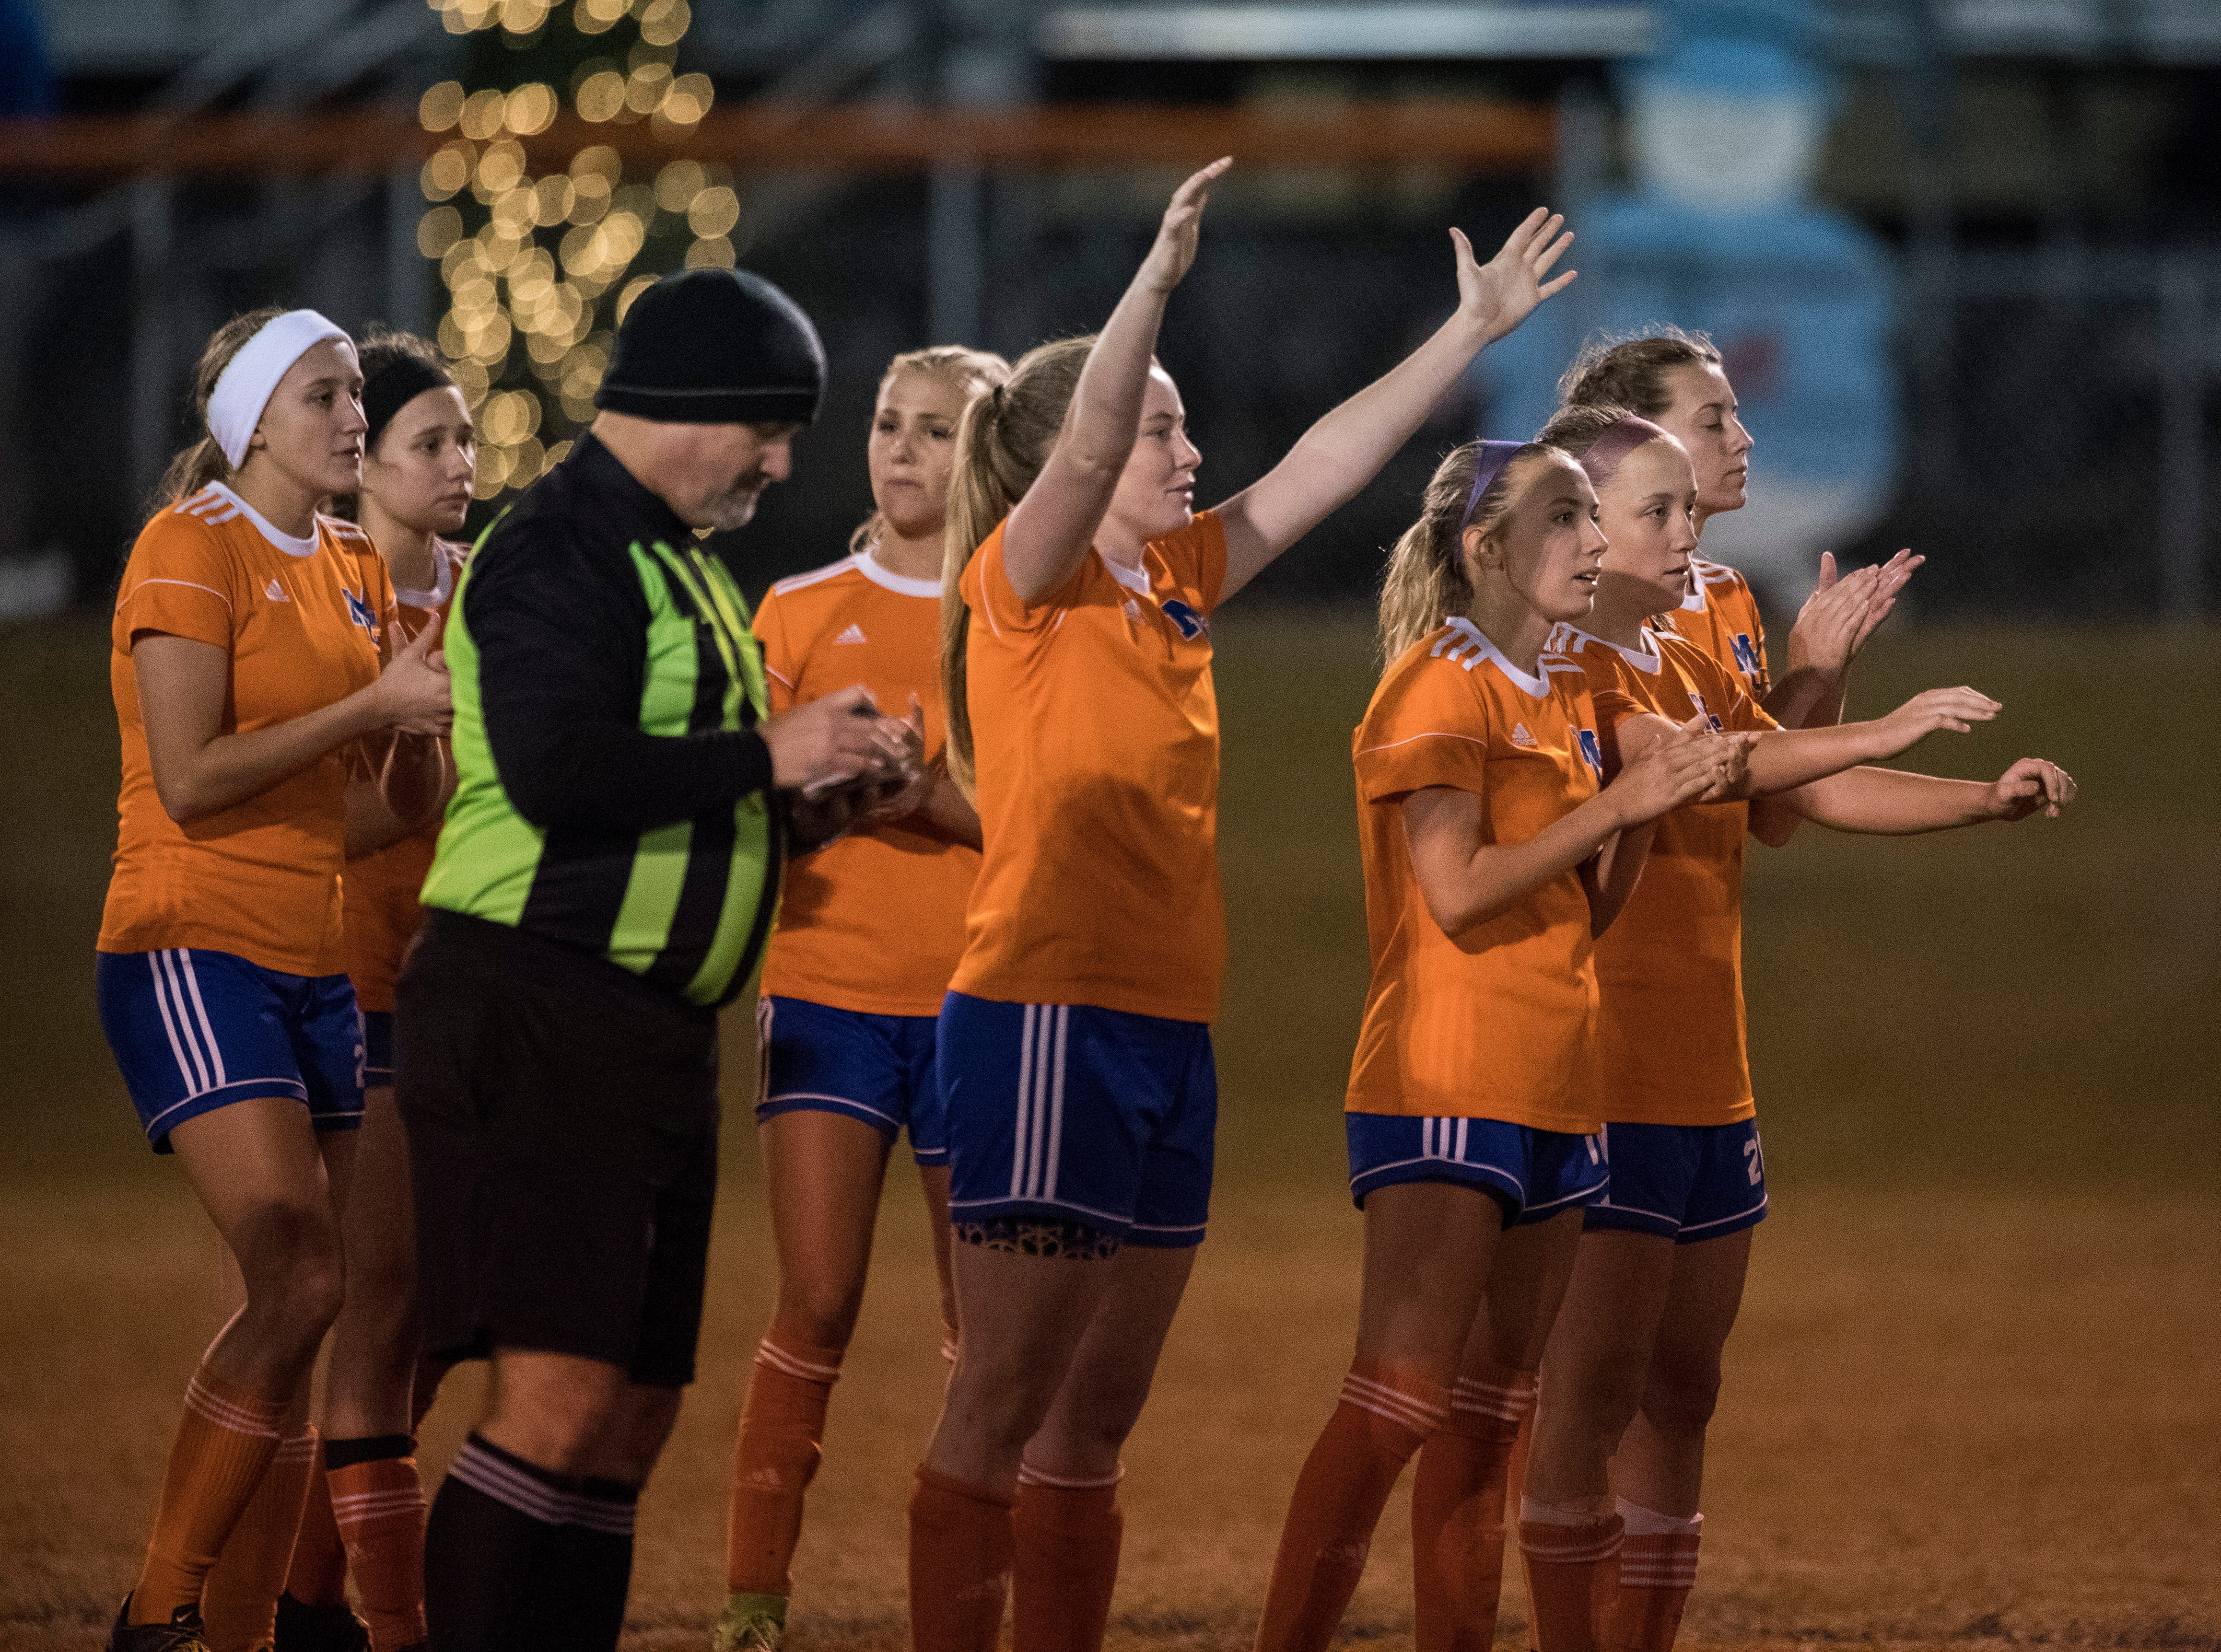 Marshall County Lady Marshals celebrate after making a penalty kick in sudden death during the first round of the KHSAA state tournament at Marshall County High School Monday, Oct. 23, 2018.